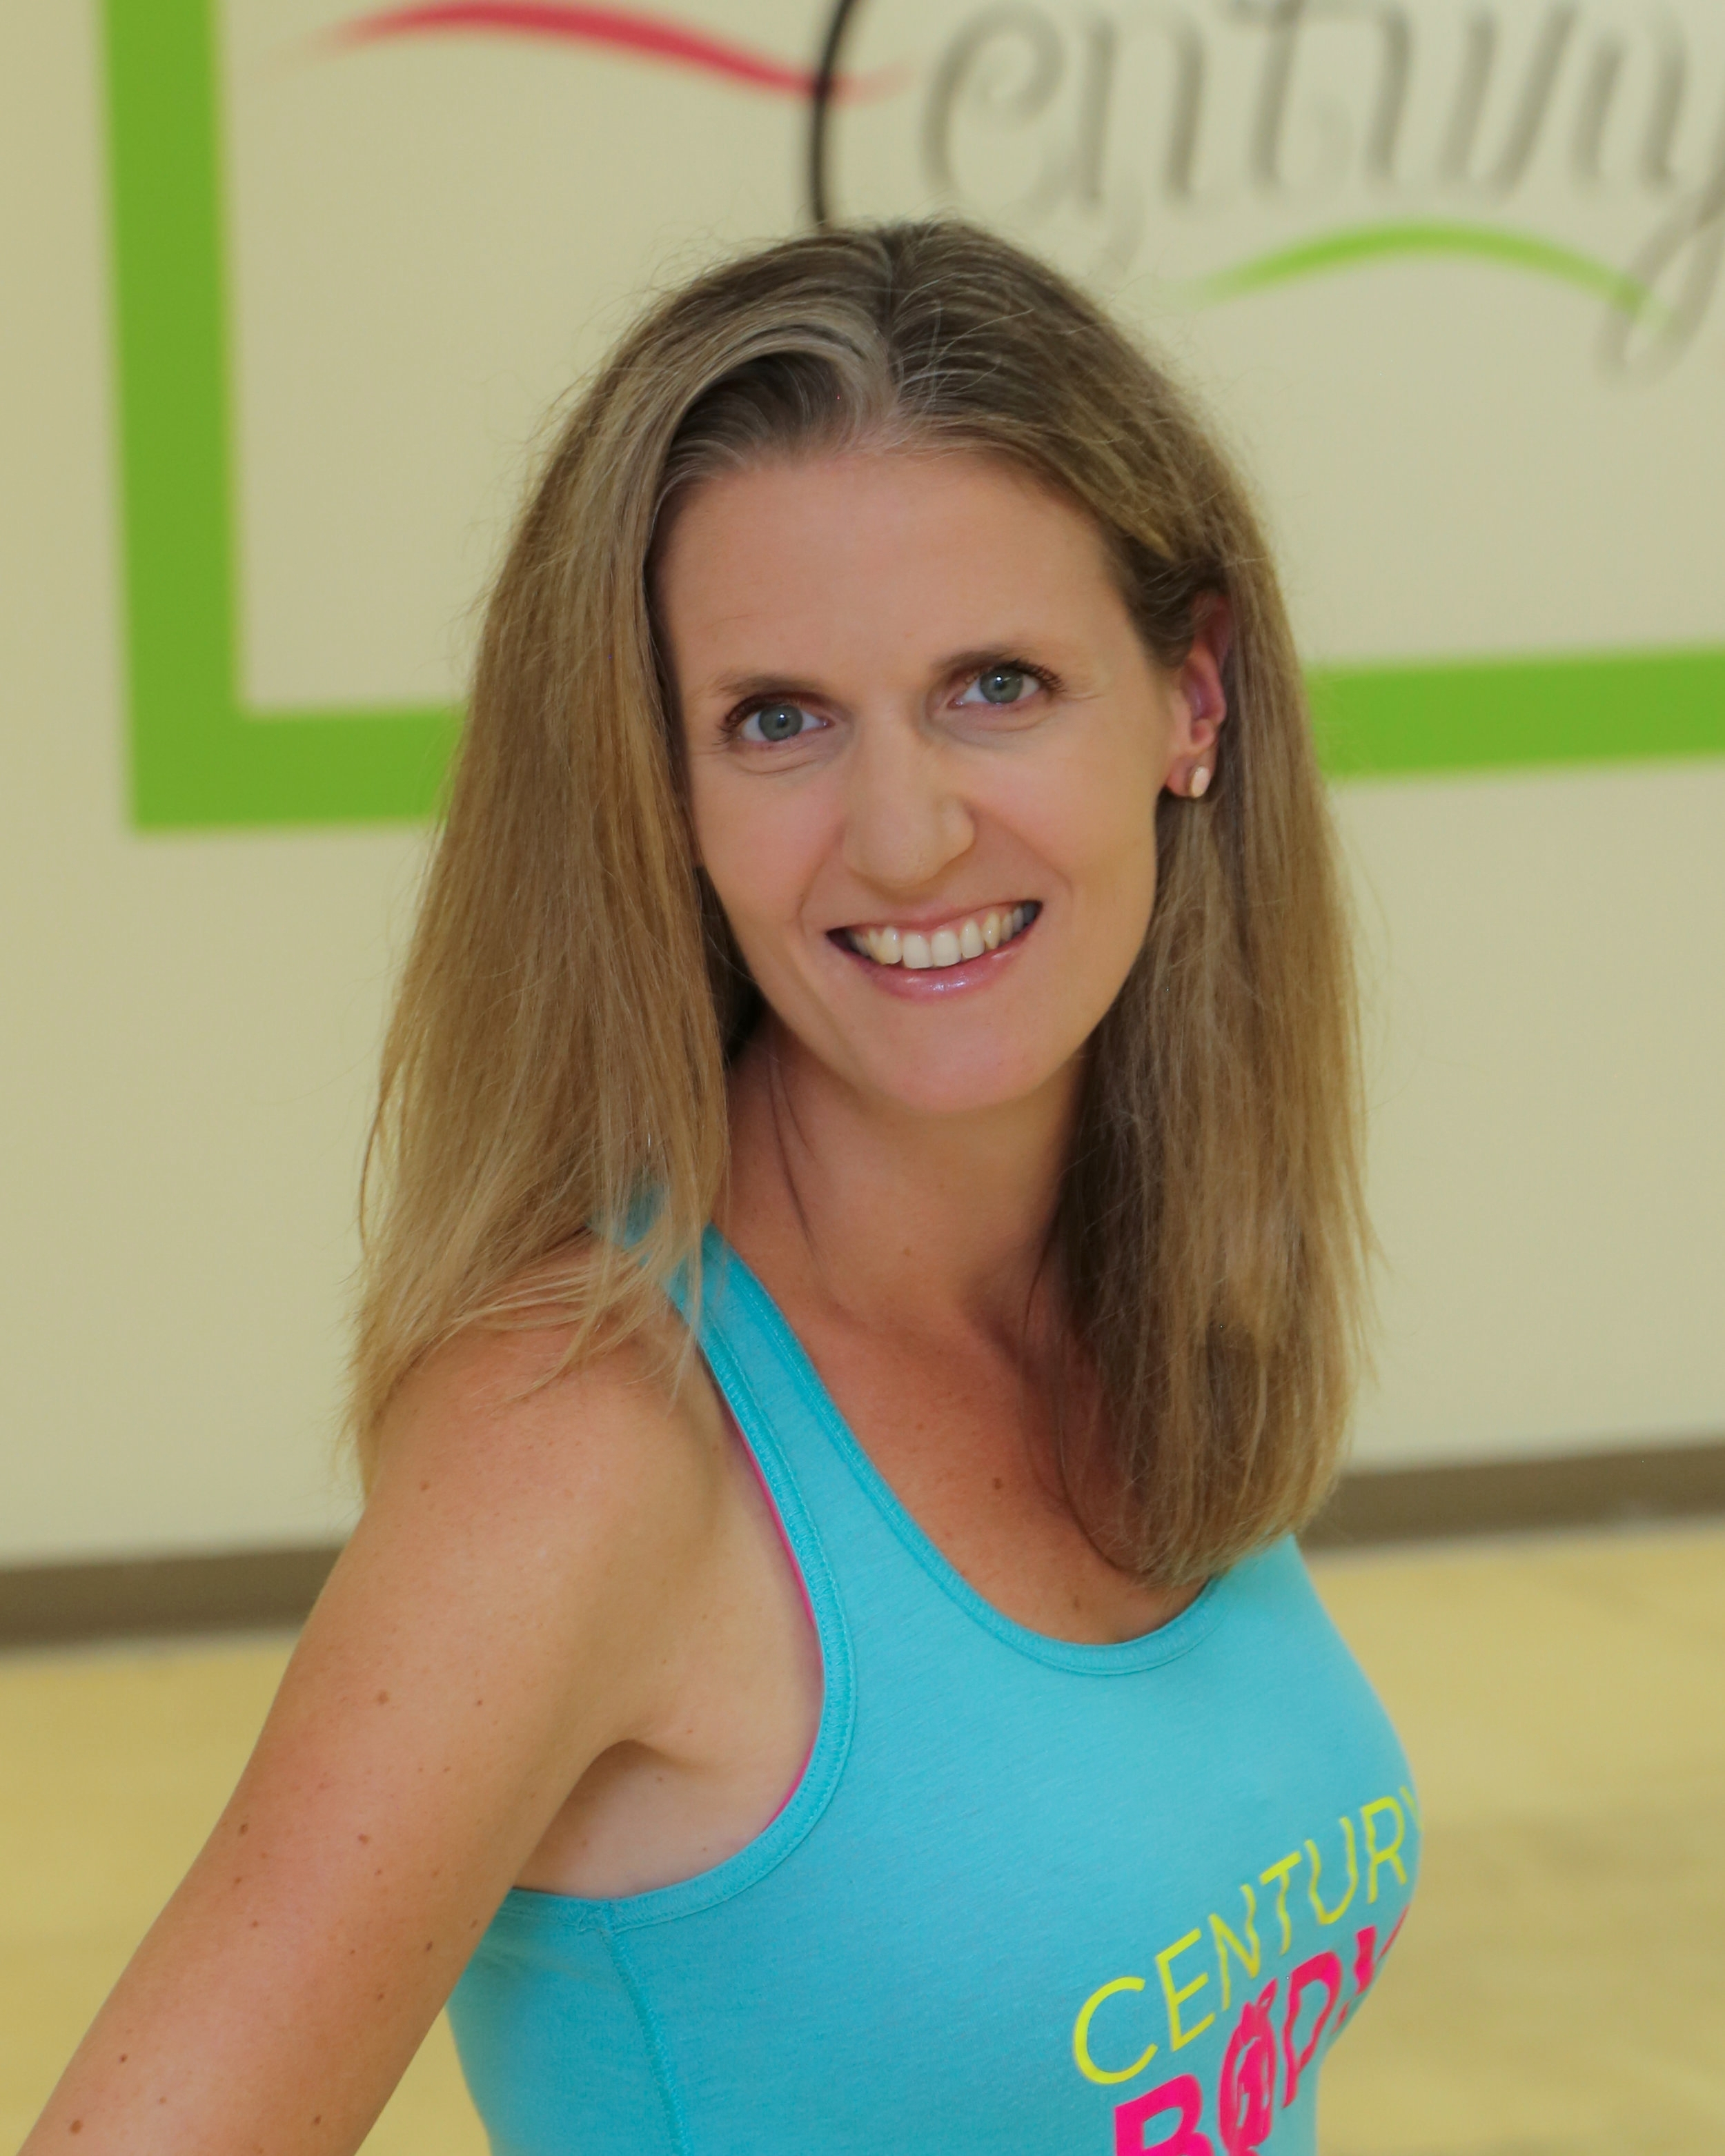 Sigi Buckner   I've been part of the Century Body family since 2010, first as a student then as a Zumba® Kids instructor in 2012. I moved onto grown ups shortly afterwards. There's so much to love about Zumba® Fitness — the music, the moves, the smiles, the sweat you don't notice until after the workout is over. But as an instructor, I love watching students grow, especially when they started their first class in the back and then find themselves letting loose and joining me closer to the font. Won't you come dance with me?